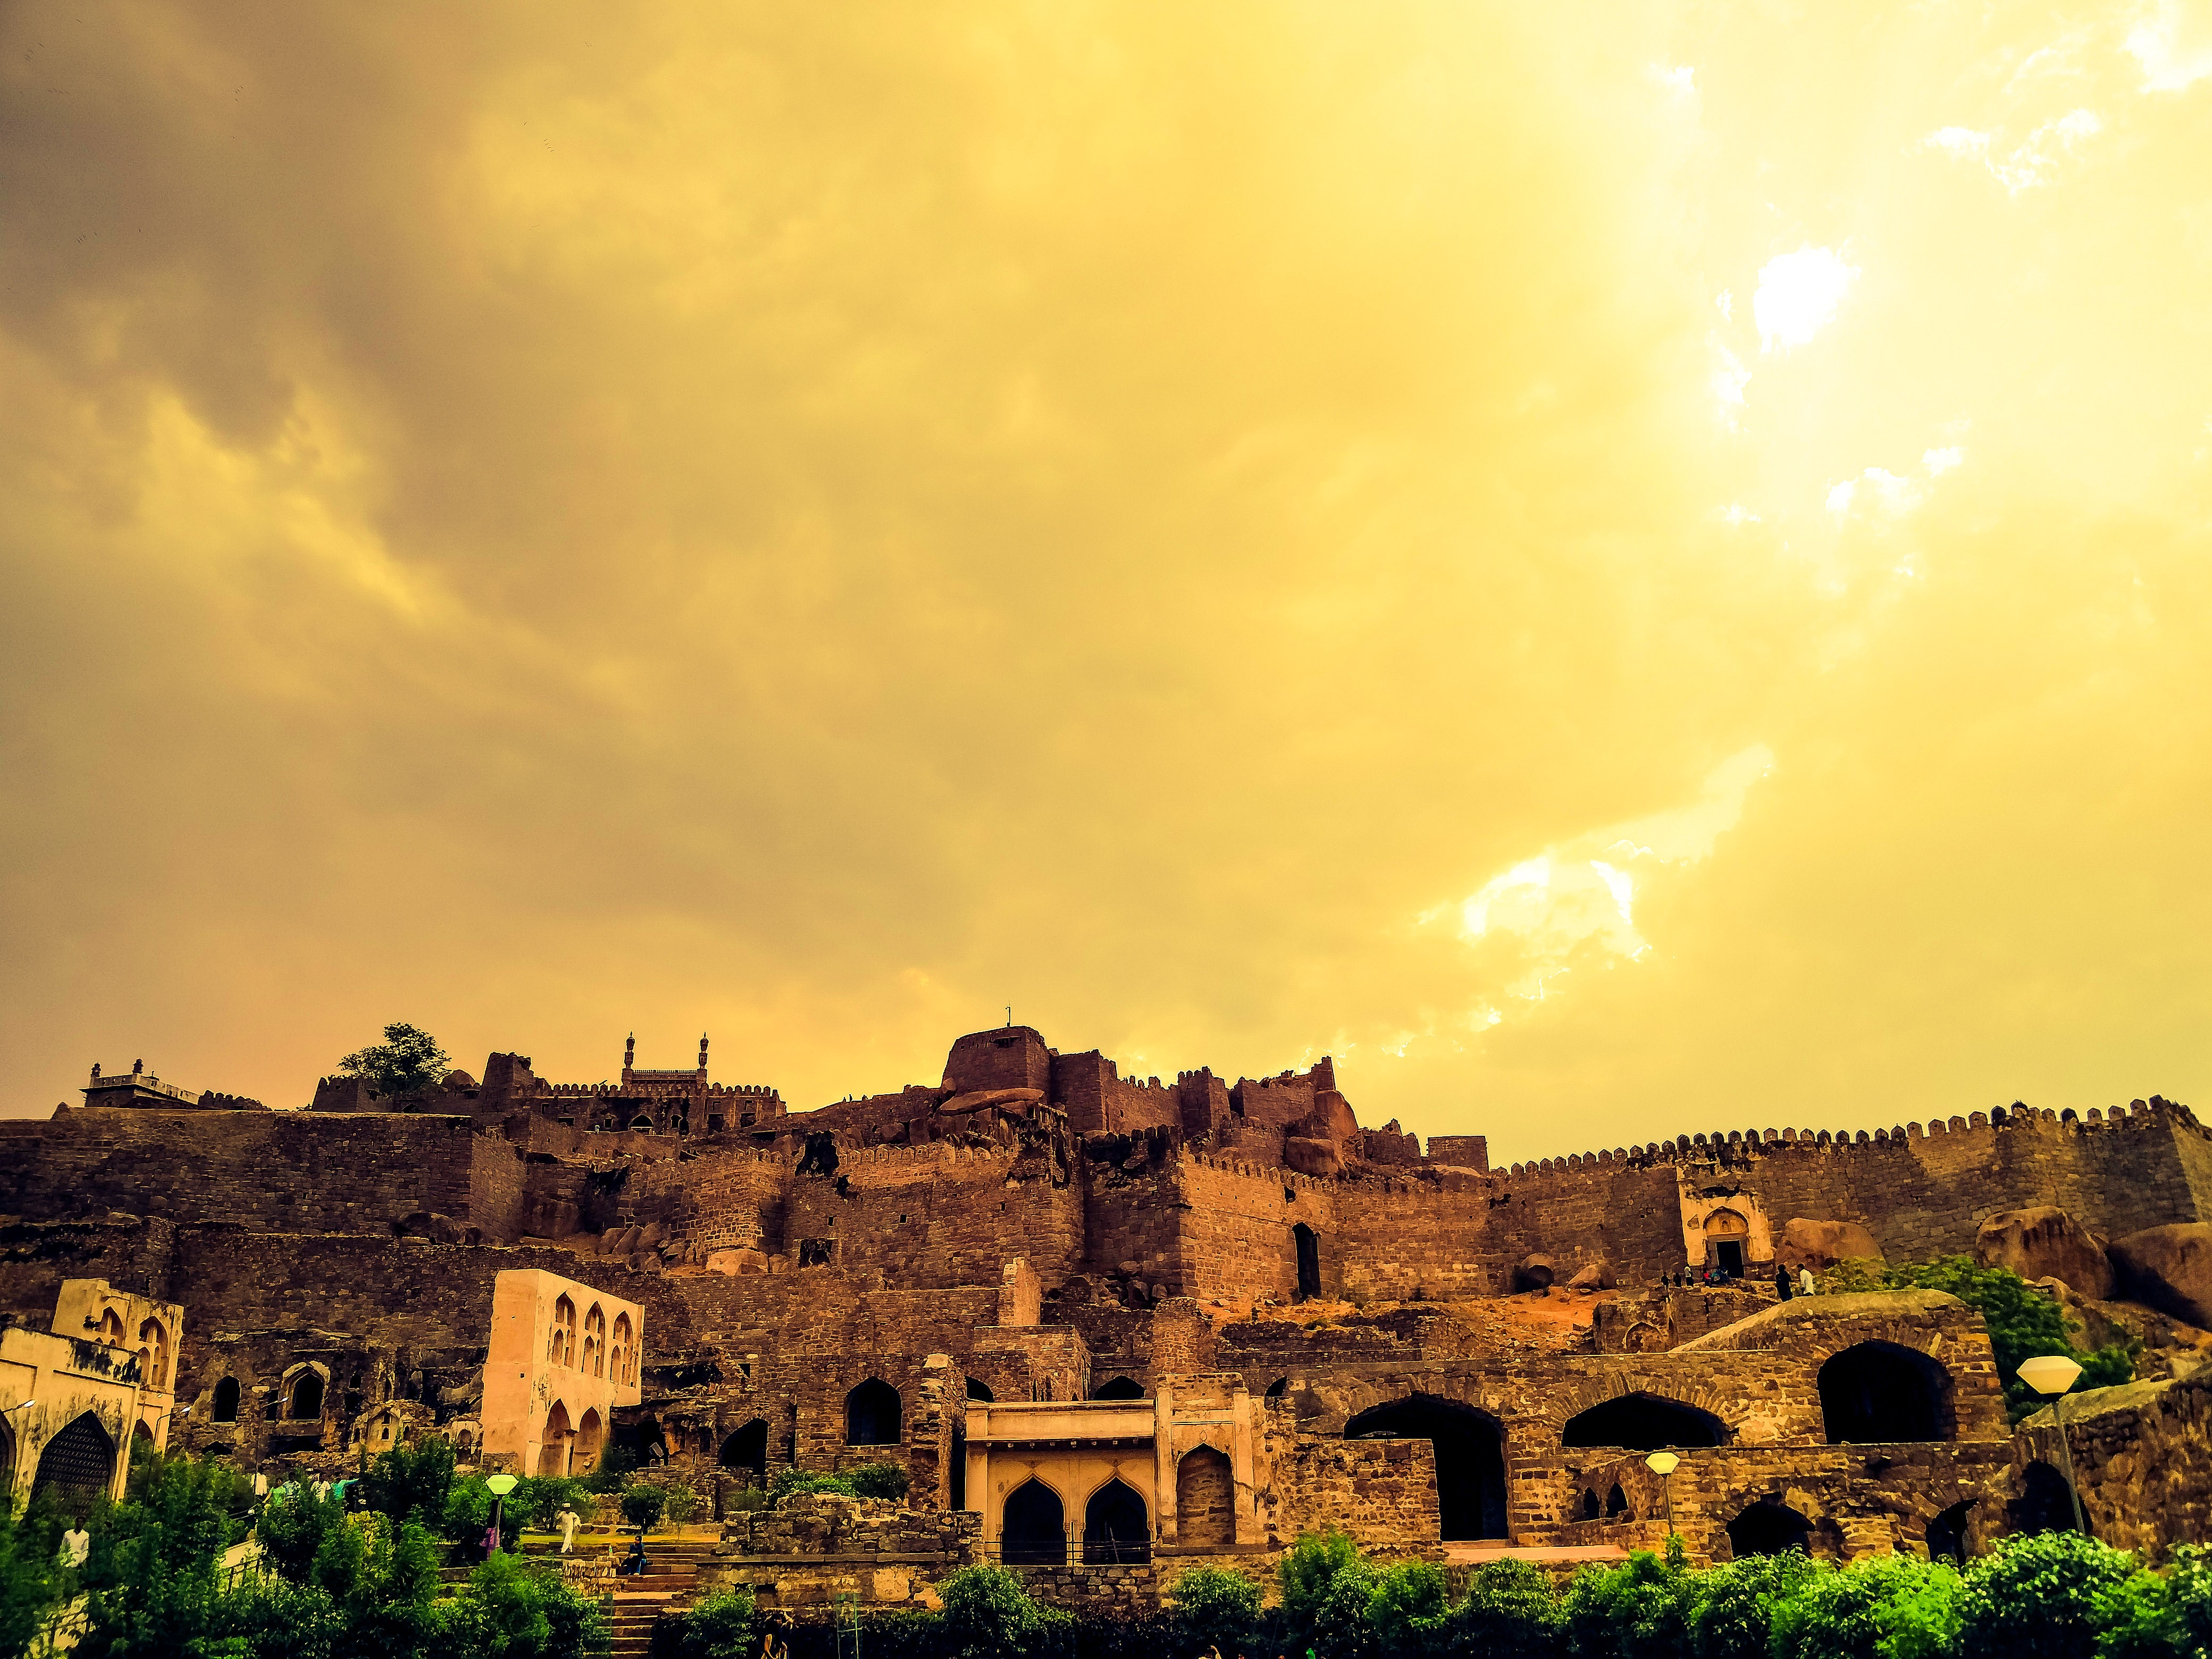 Ancient buildings bathed in a golden glow under a yellow sky.